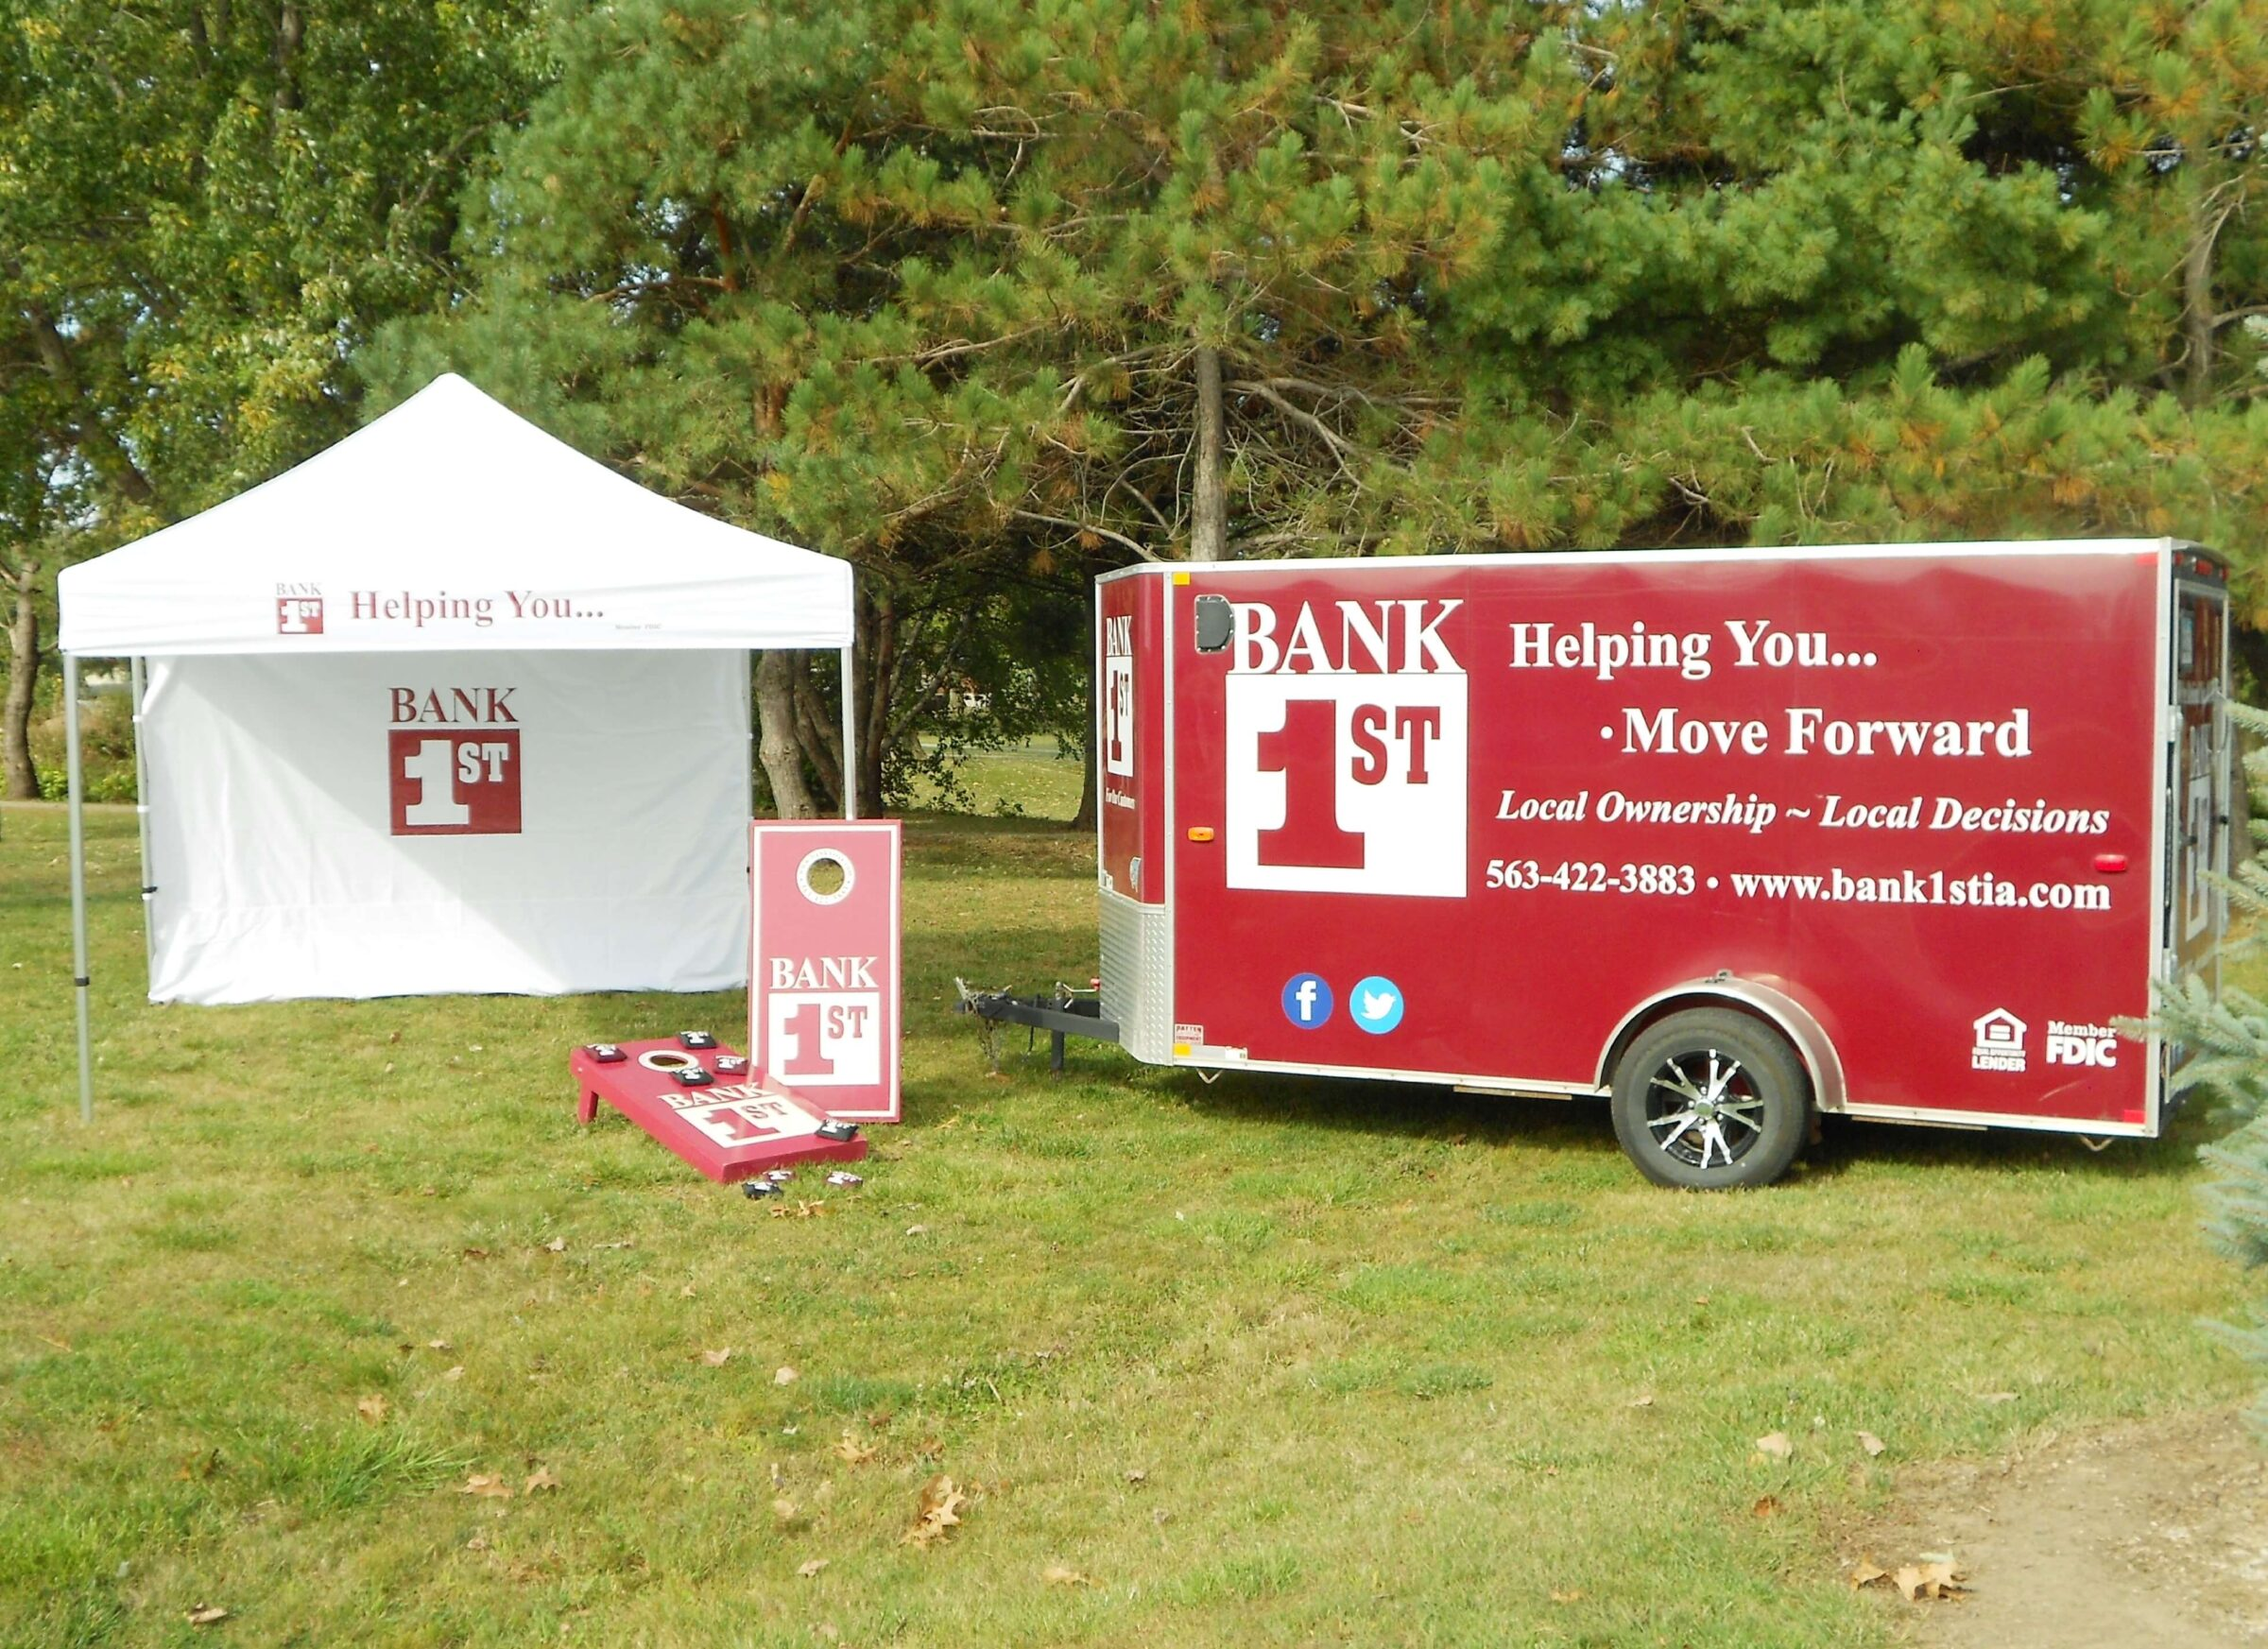 Bank 1st trailer, tent and bean bag boards